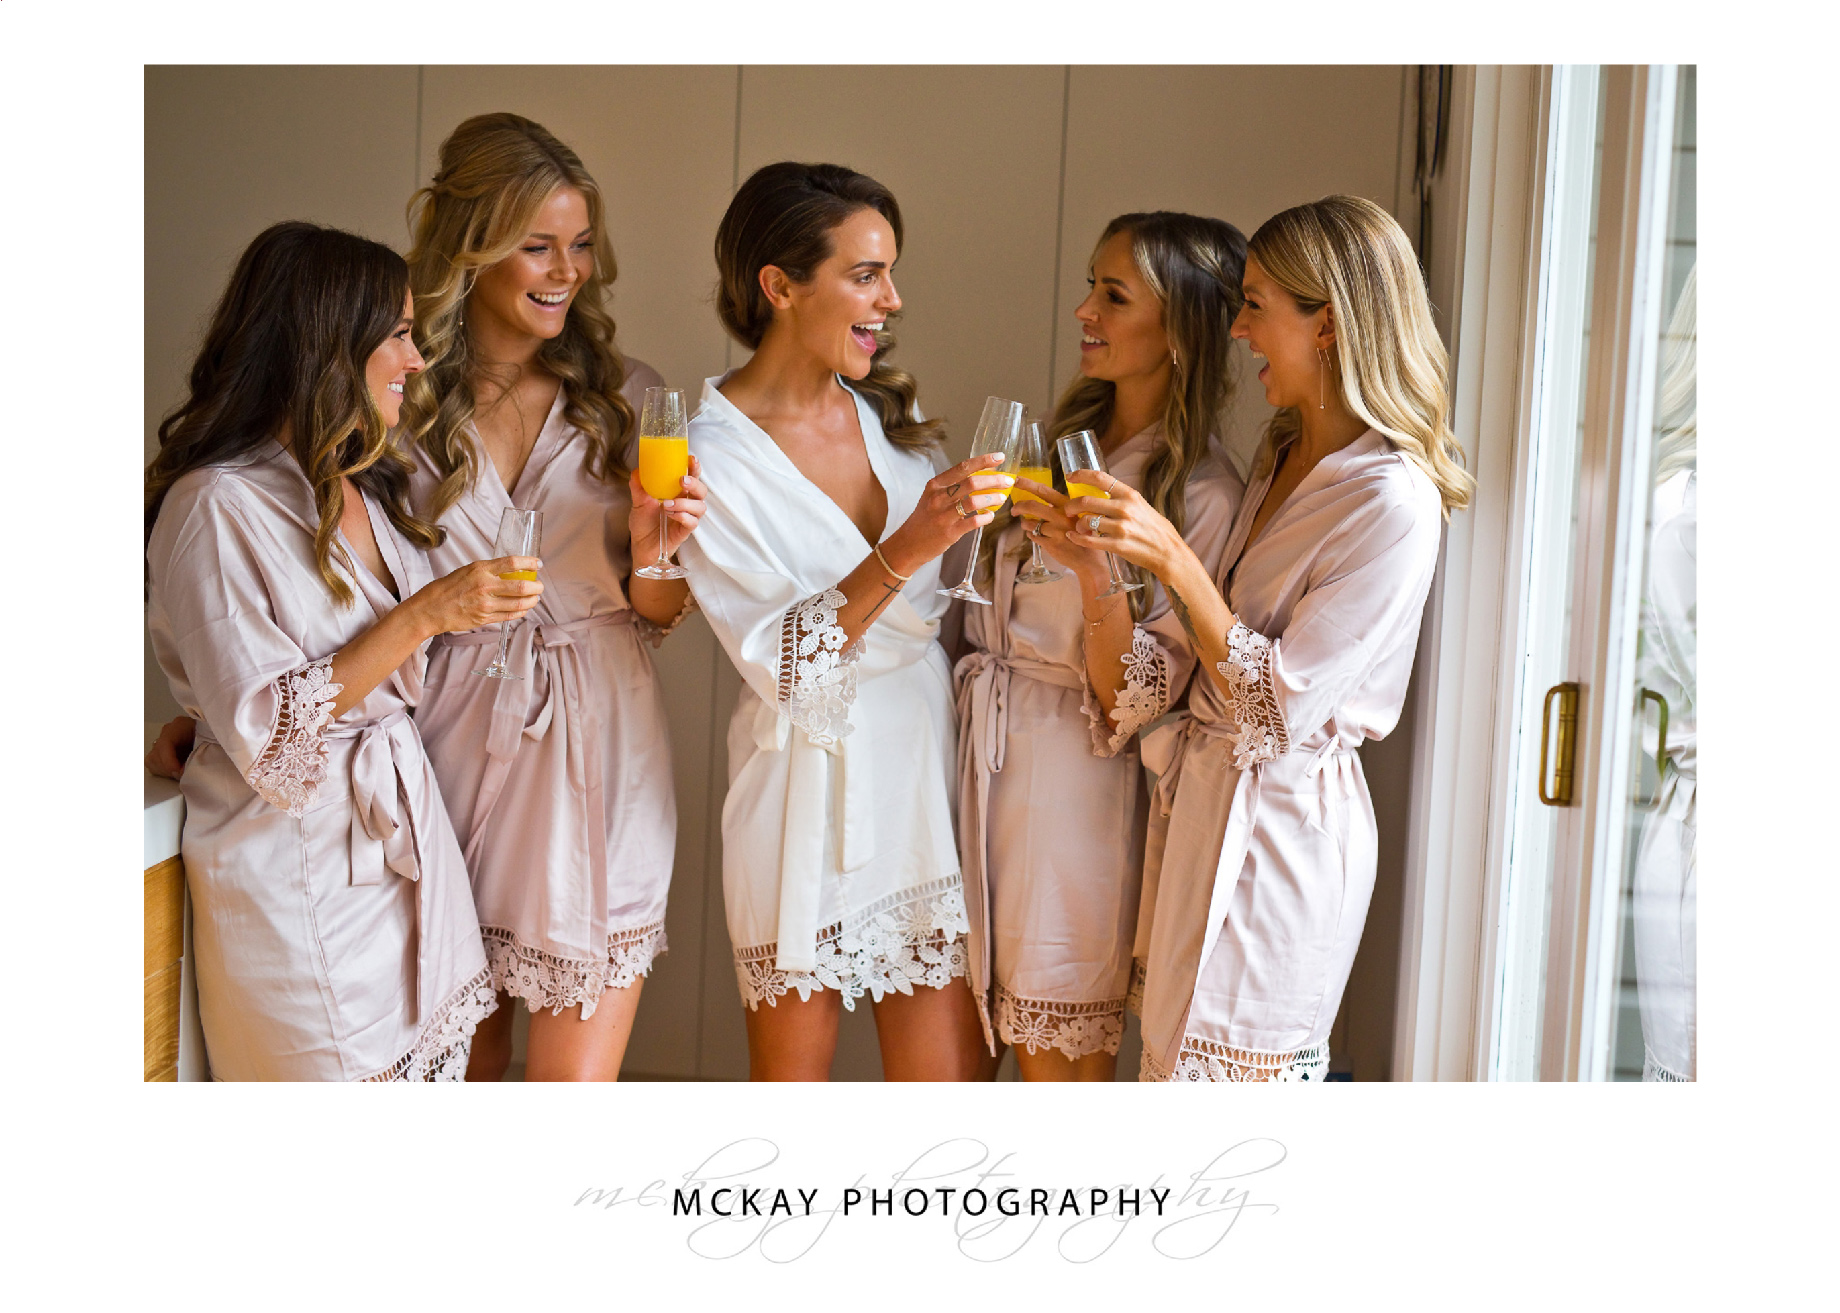 Ali and bridesmaids get ready for the wedding